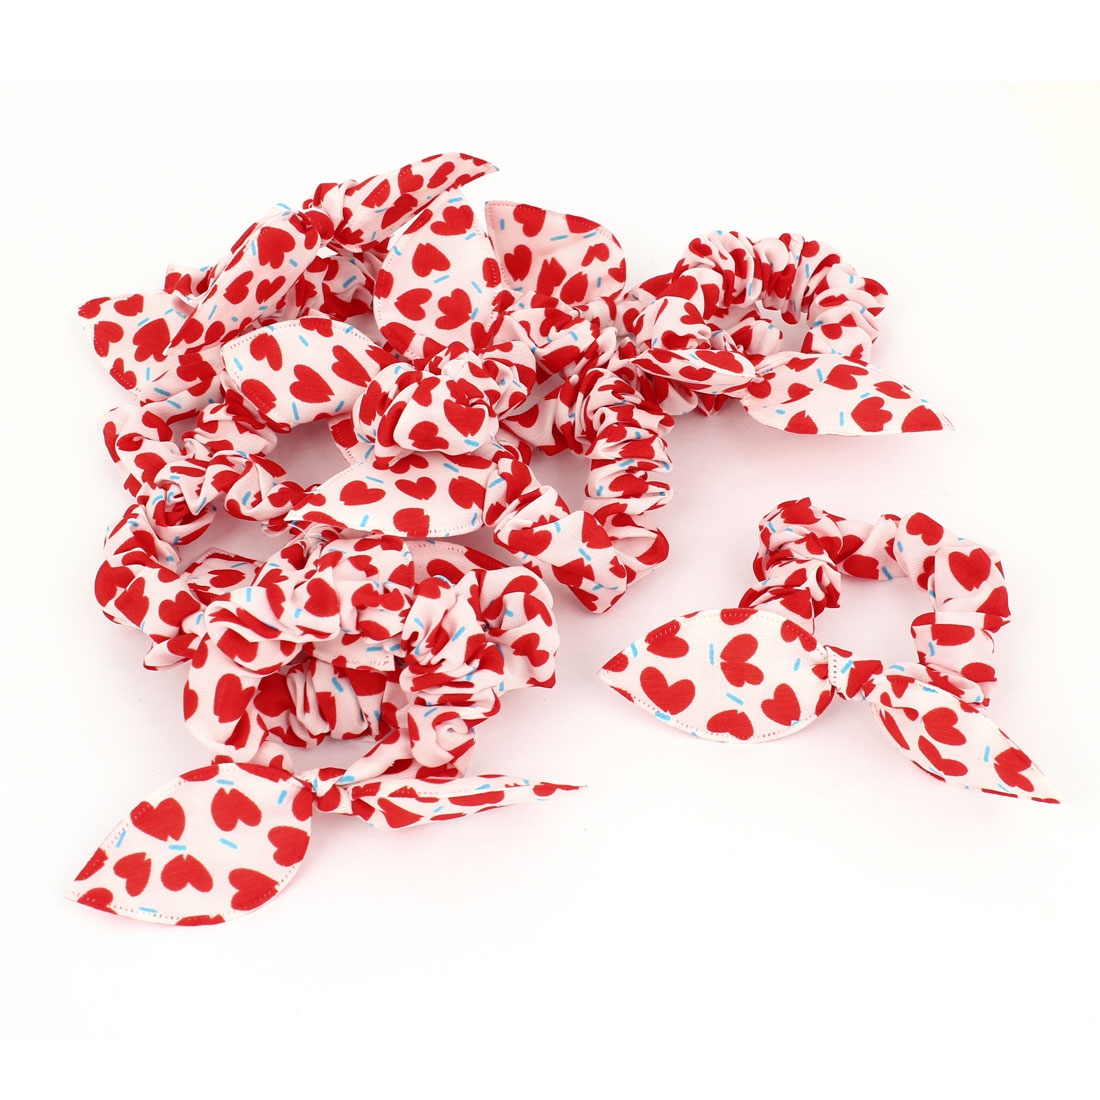 Girls Red Heart Print Rabbit Ear Elastic Hair Tie Ponytail Holder White 10 Pcs